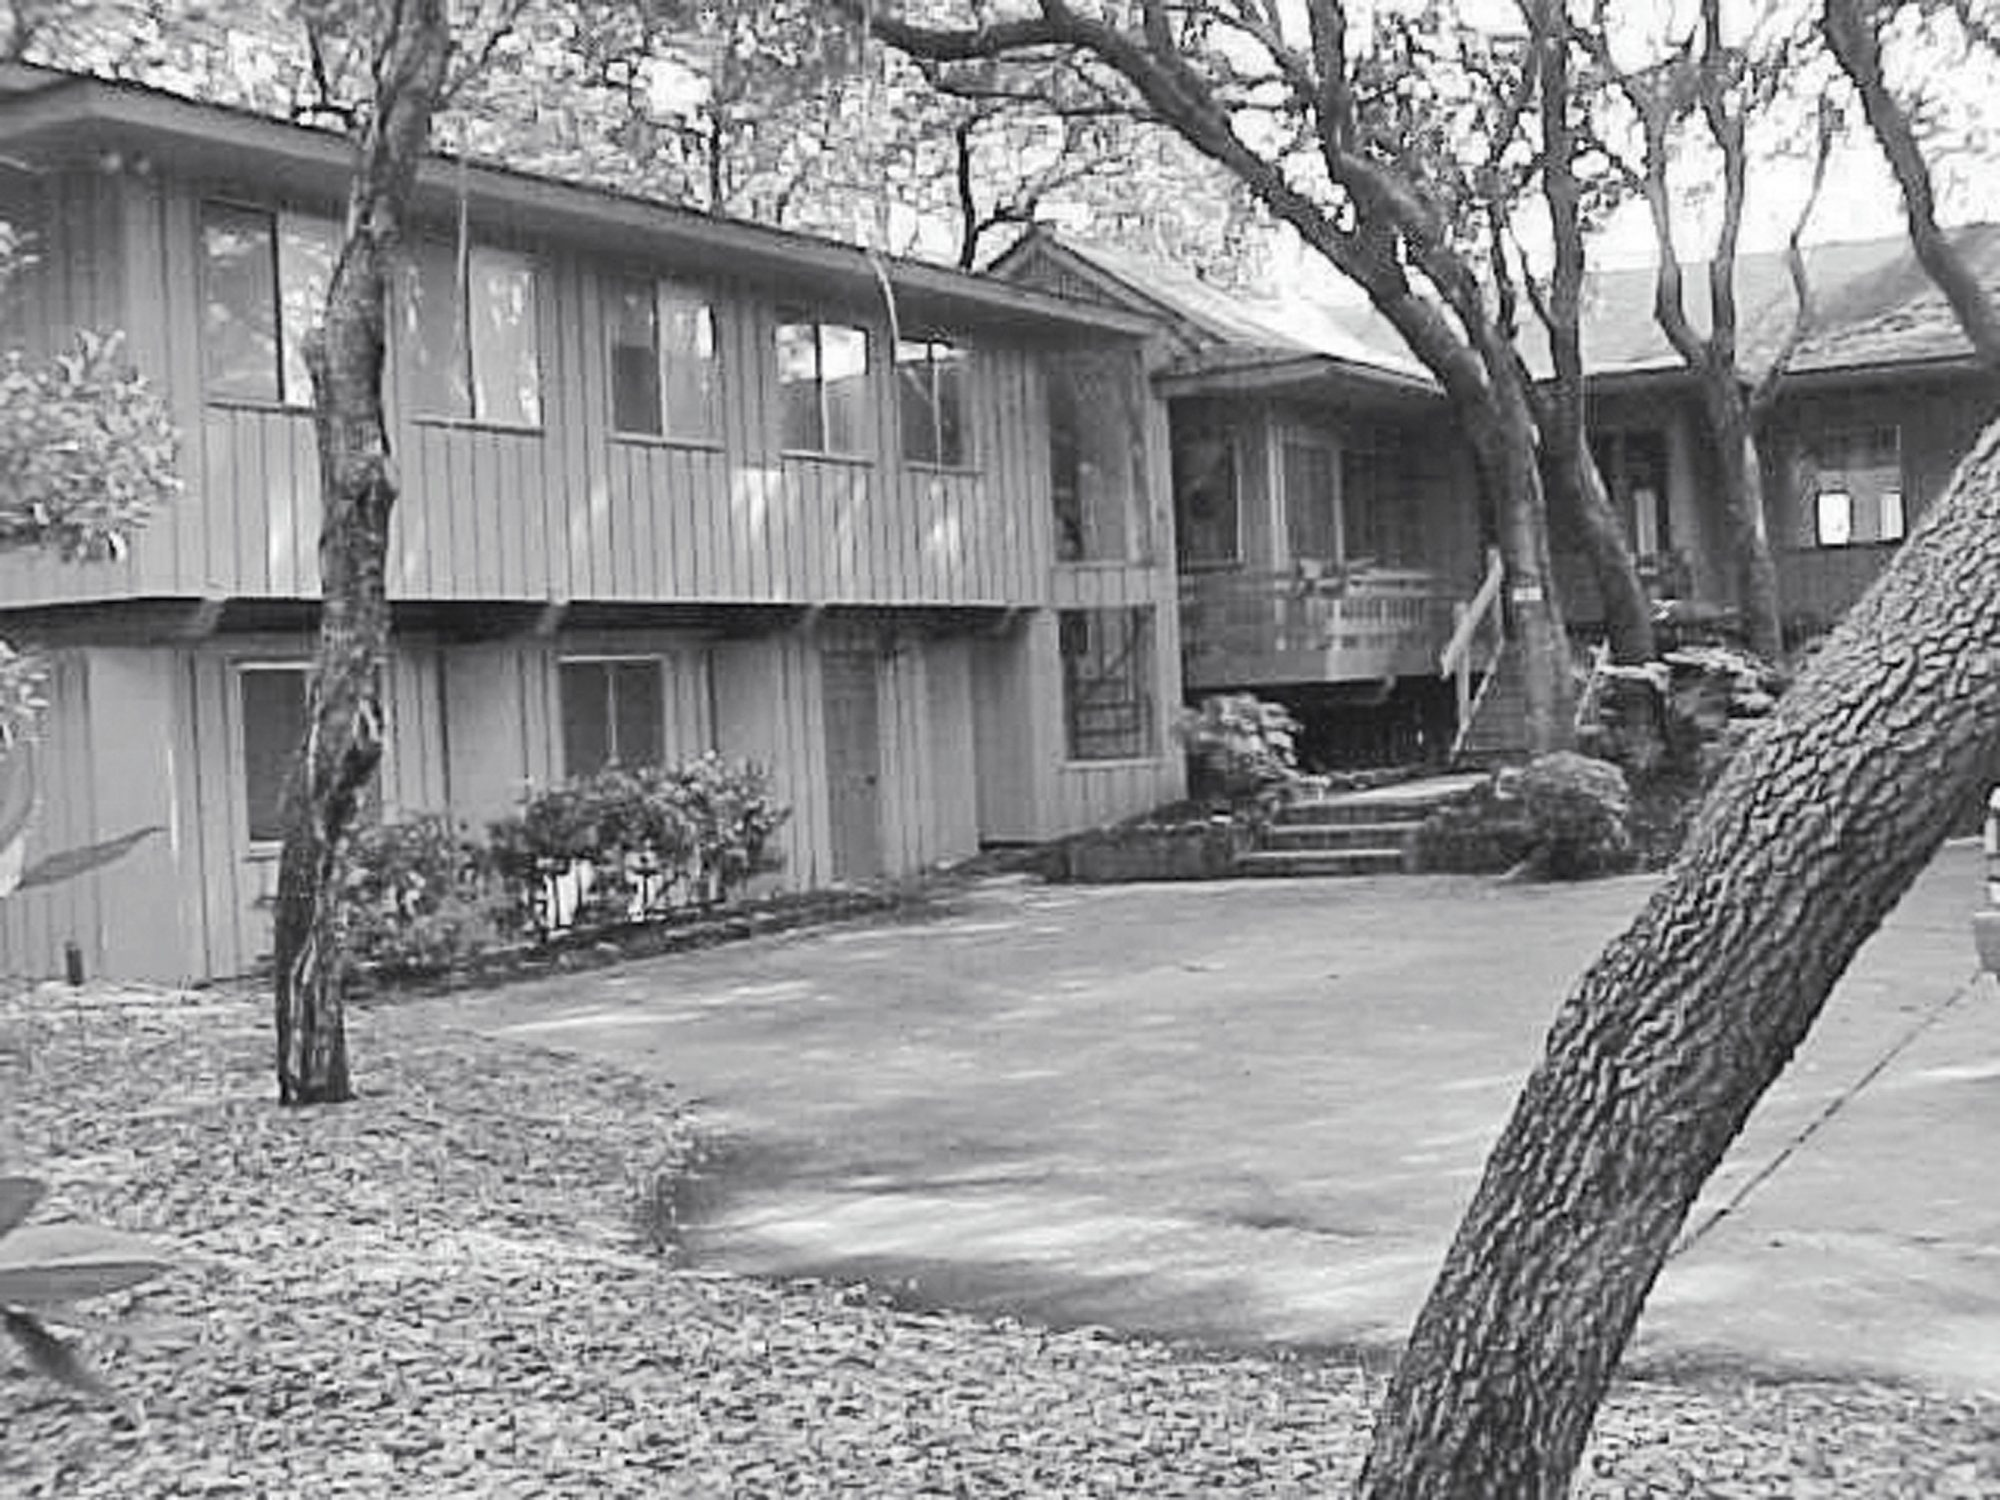 This sprawling 1960s bare-bones home had little character and was in danger of being torn down.